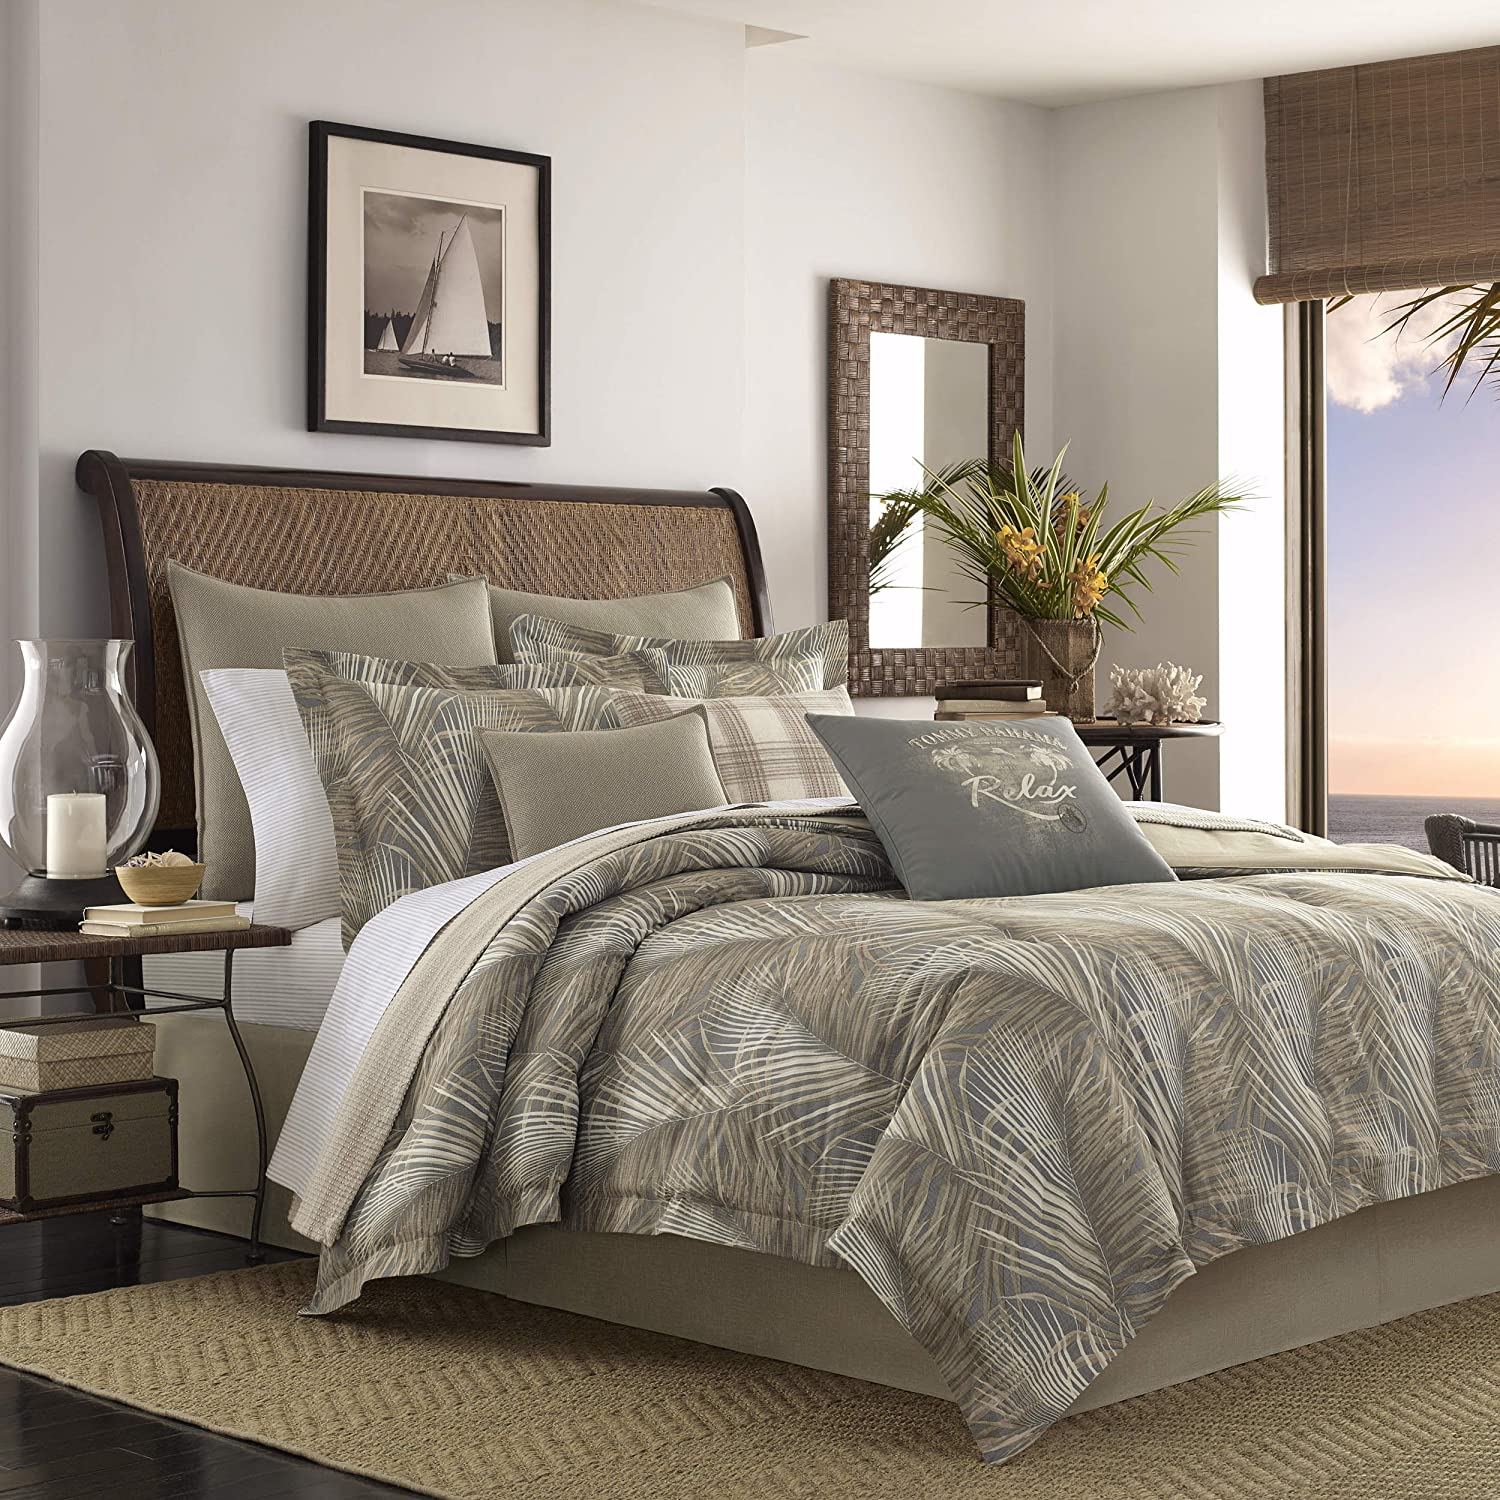 Tommy Bahama Raffia Palms Duvet Cover, King, Brown